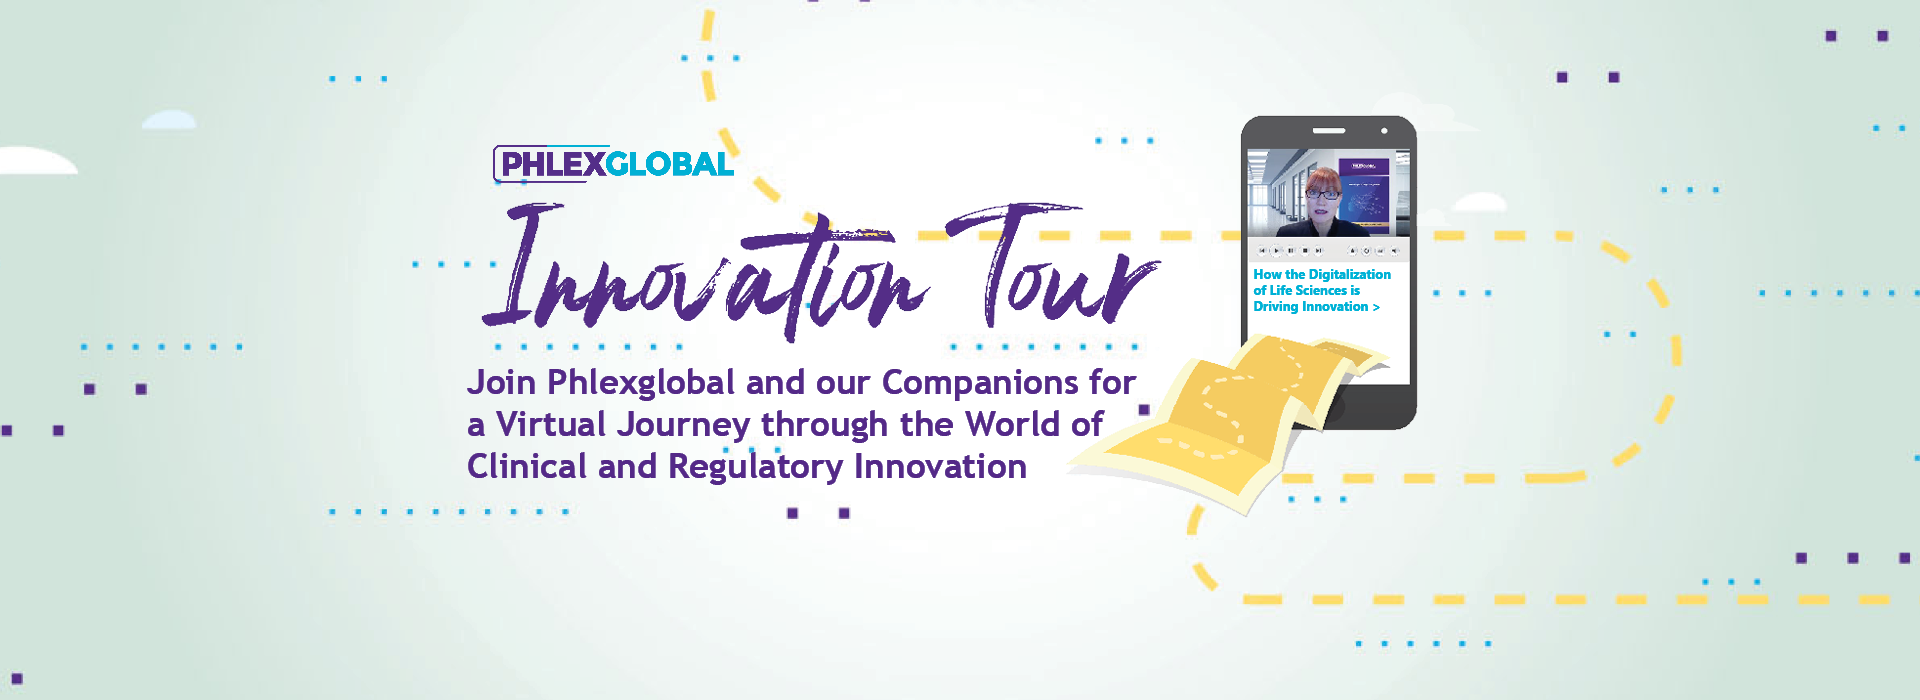 Innovation Tour Web Banner Final UPDATED